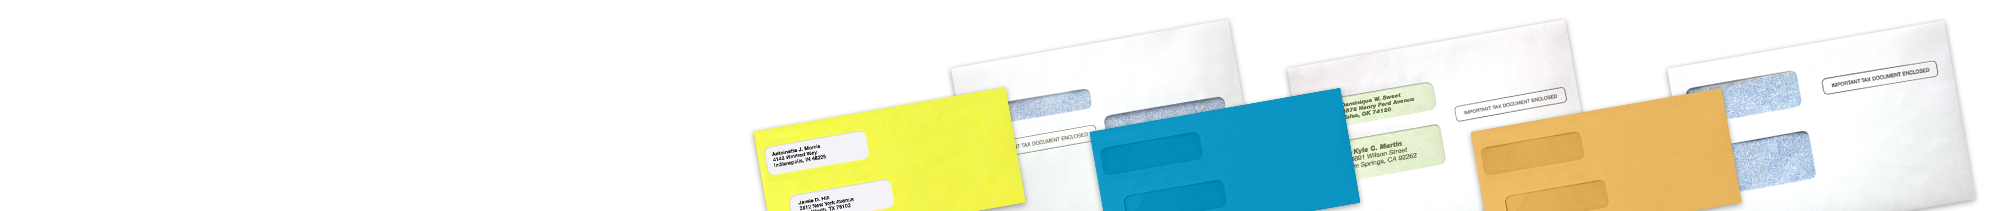 W2 Tax Form Envelopes